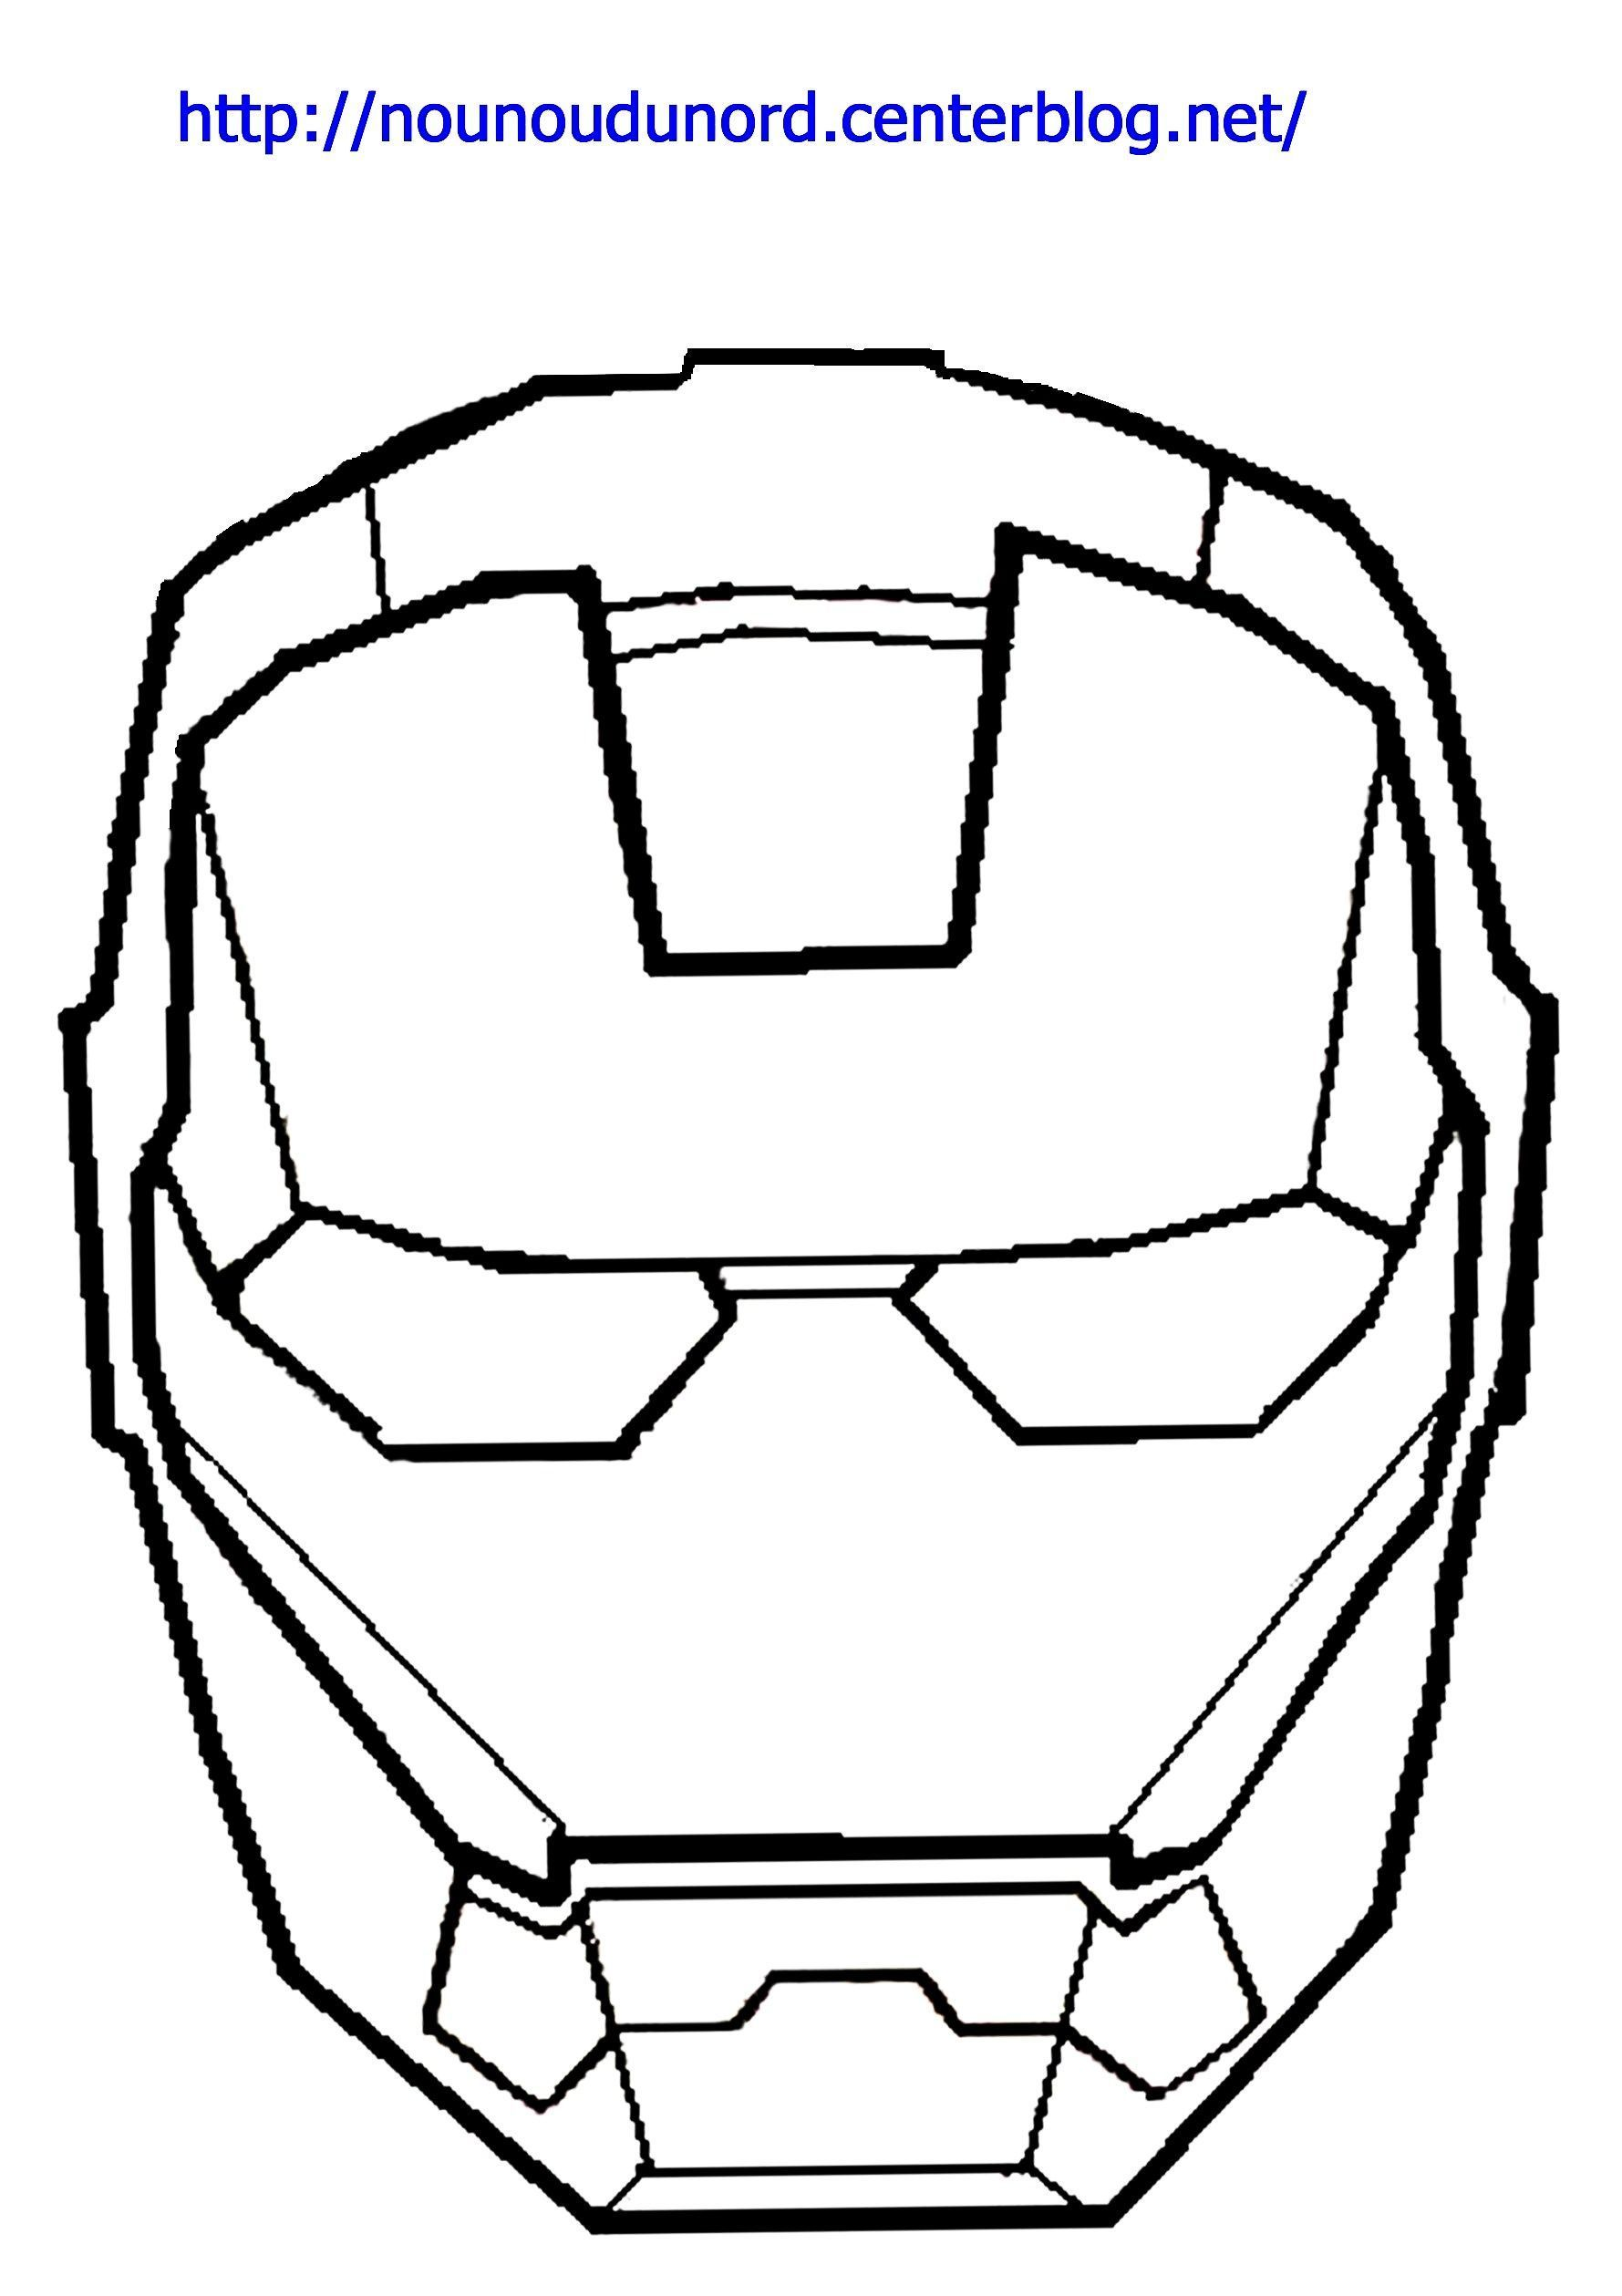 free iron man logo coloring pages. Black Bedroom Furniture Sets. Home Design Ideas